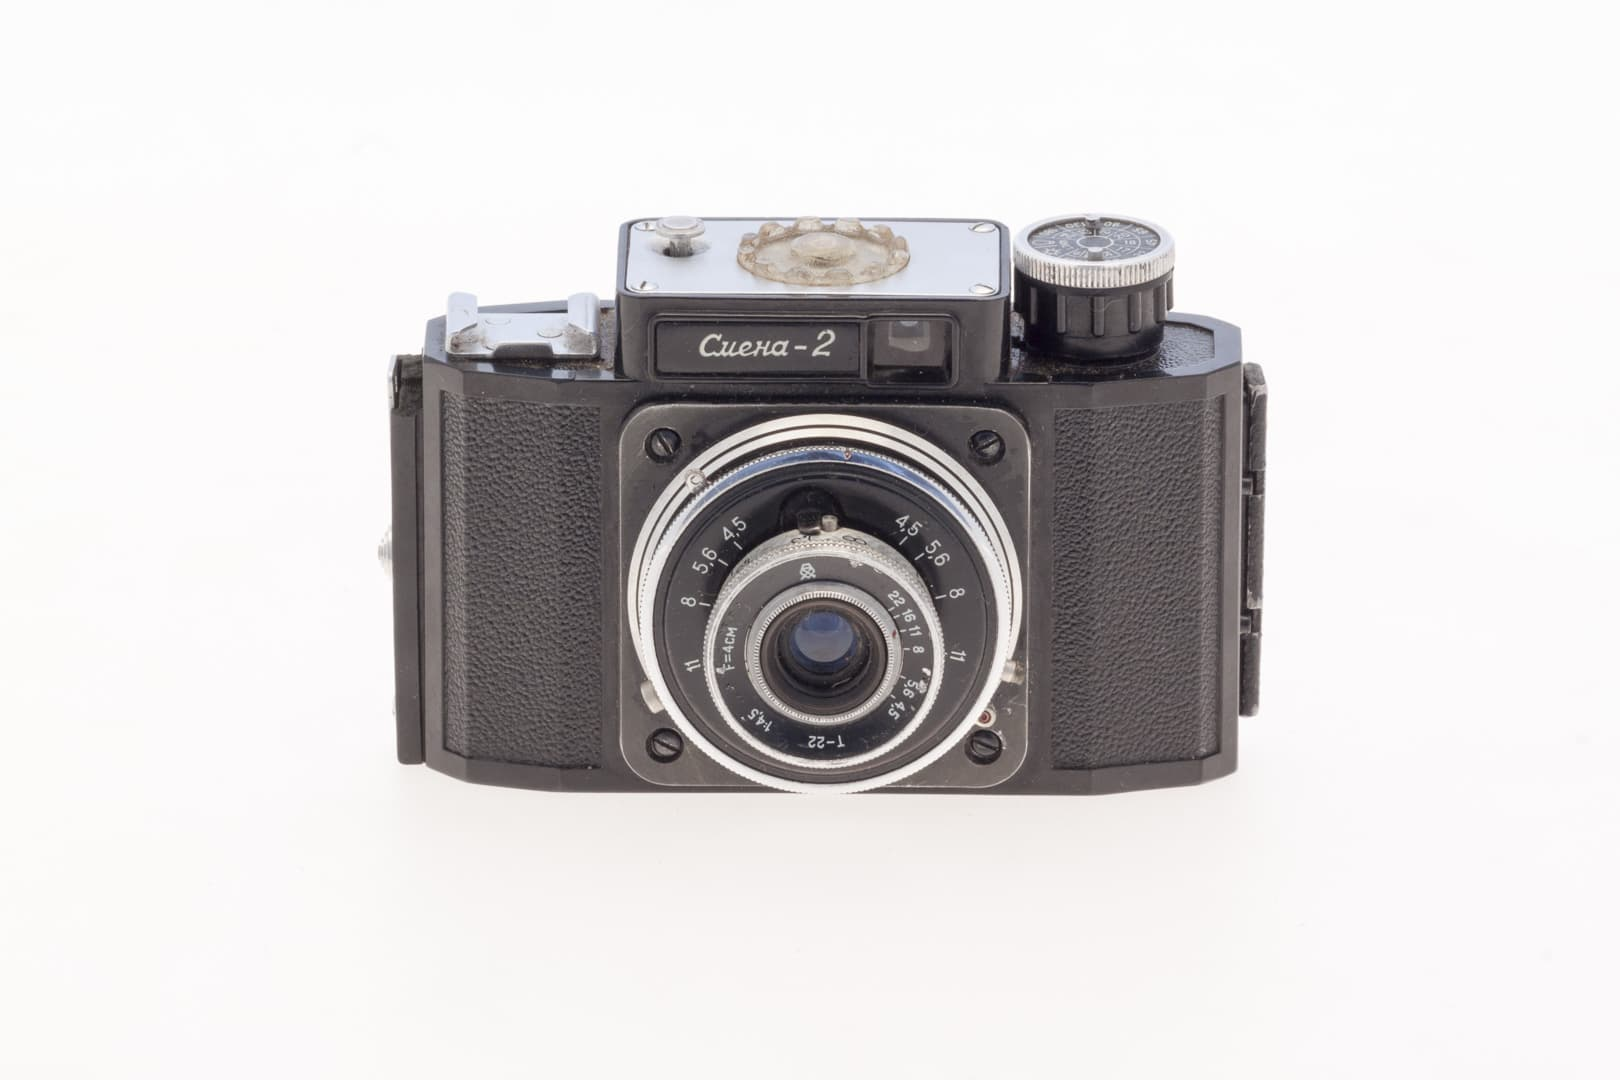 Smena 2 (Смена) – Soviet 35mm Compact Film Camera Front View